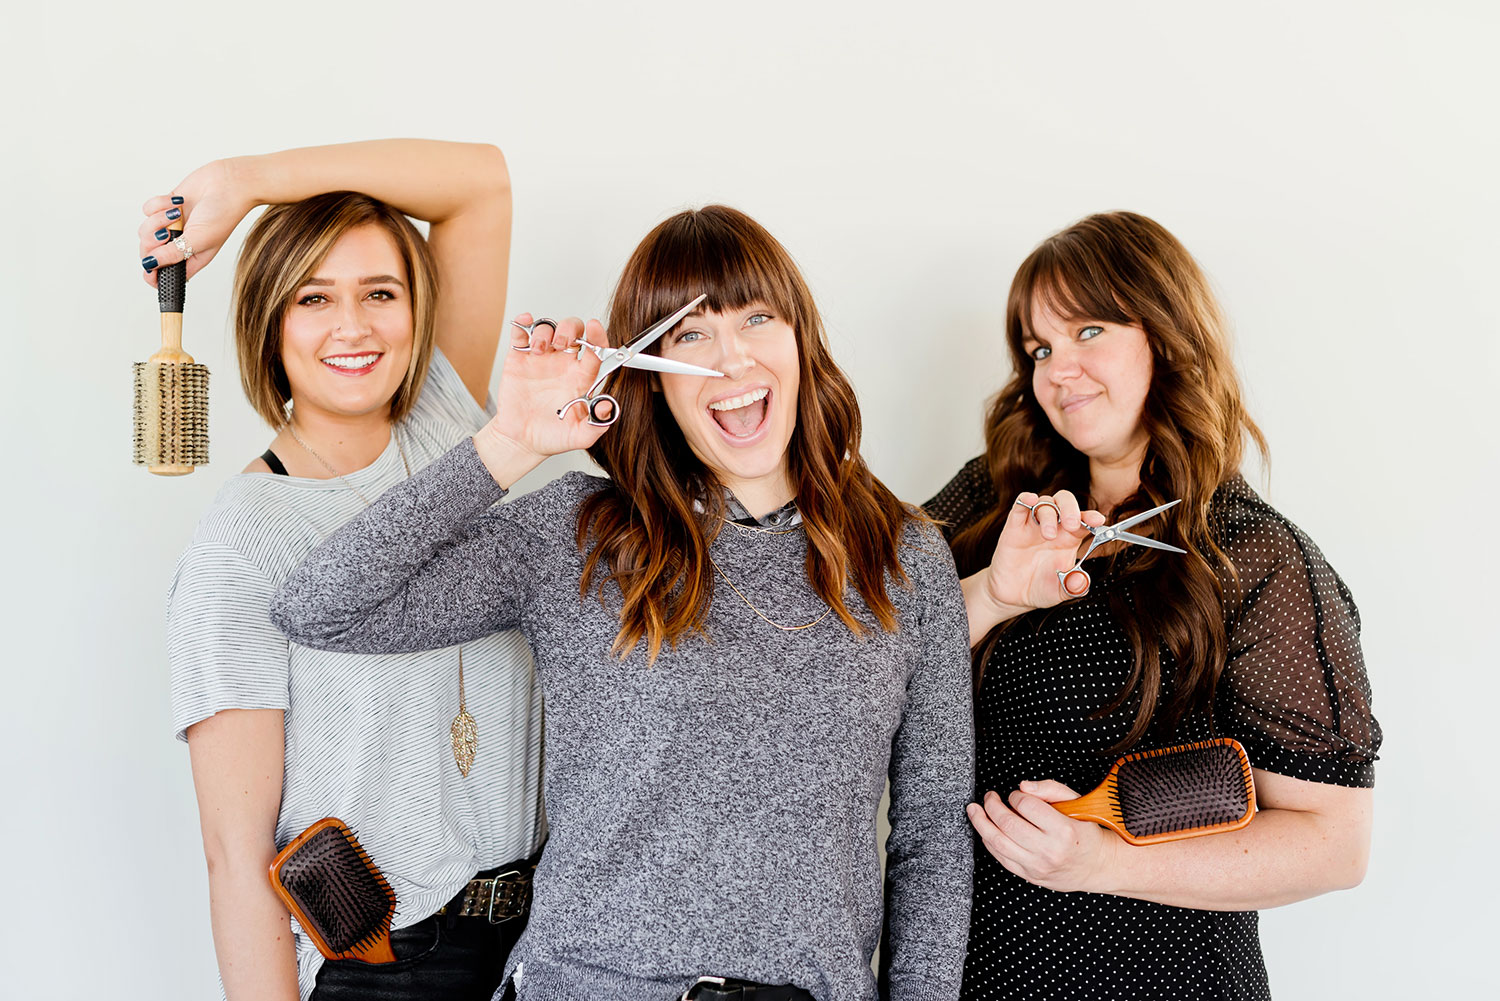 Three smiling hairdressers with scissors